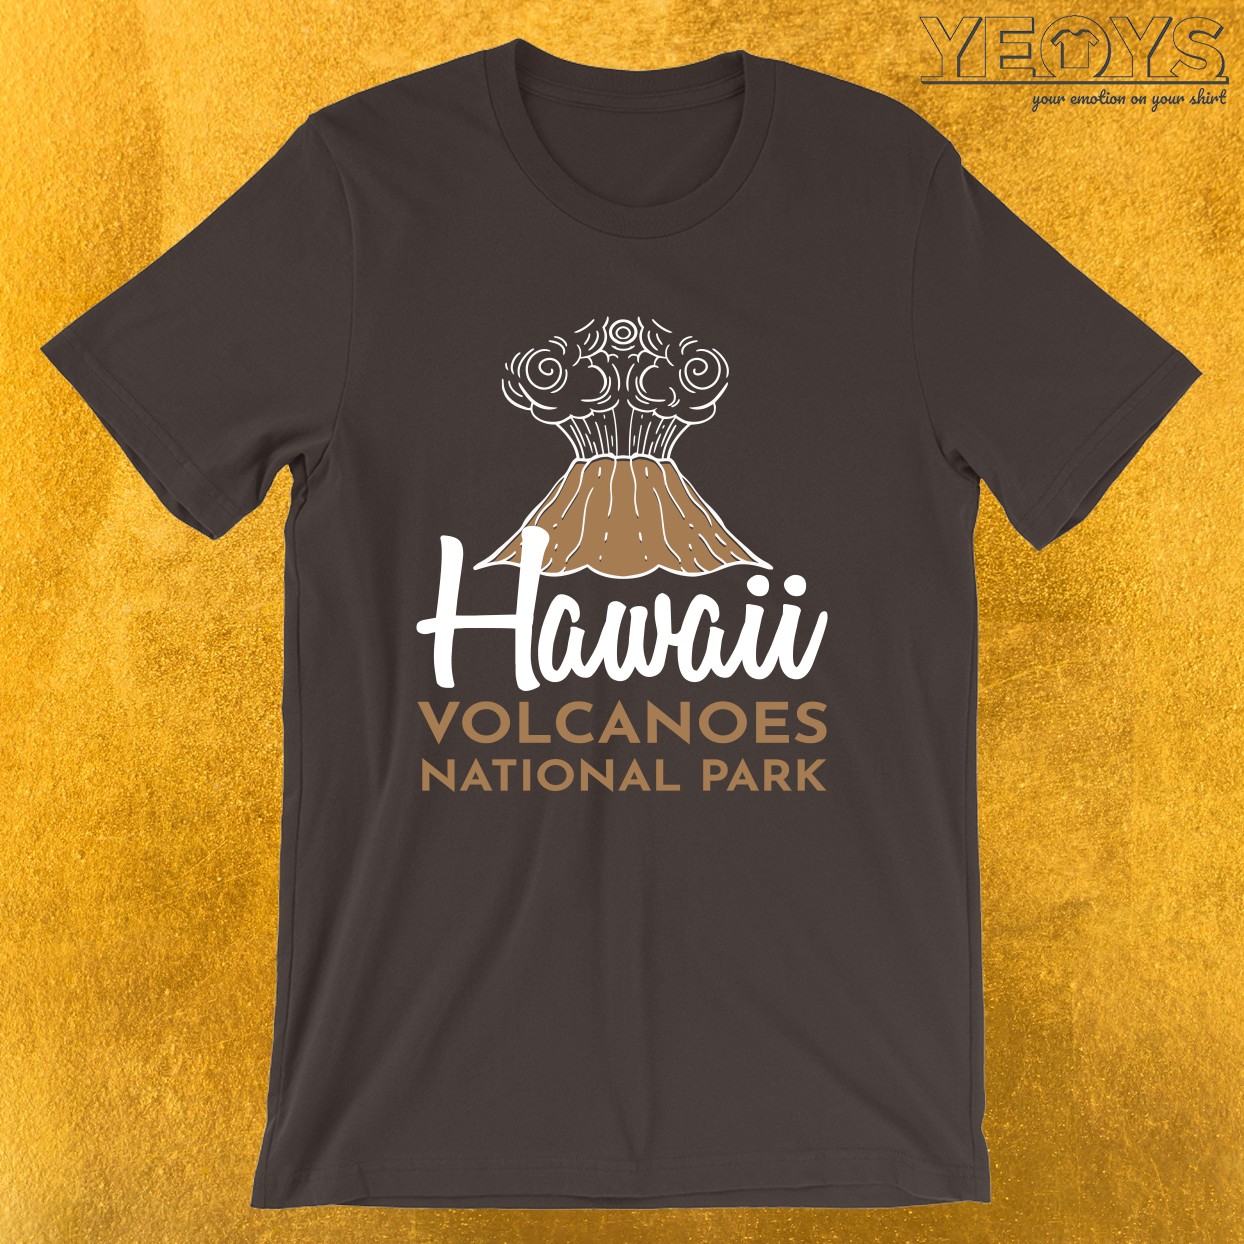 Hawaii Volcanoes National Park – Lava Volcano Tee